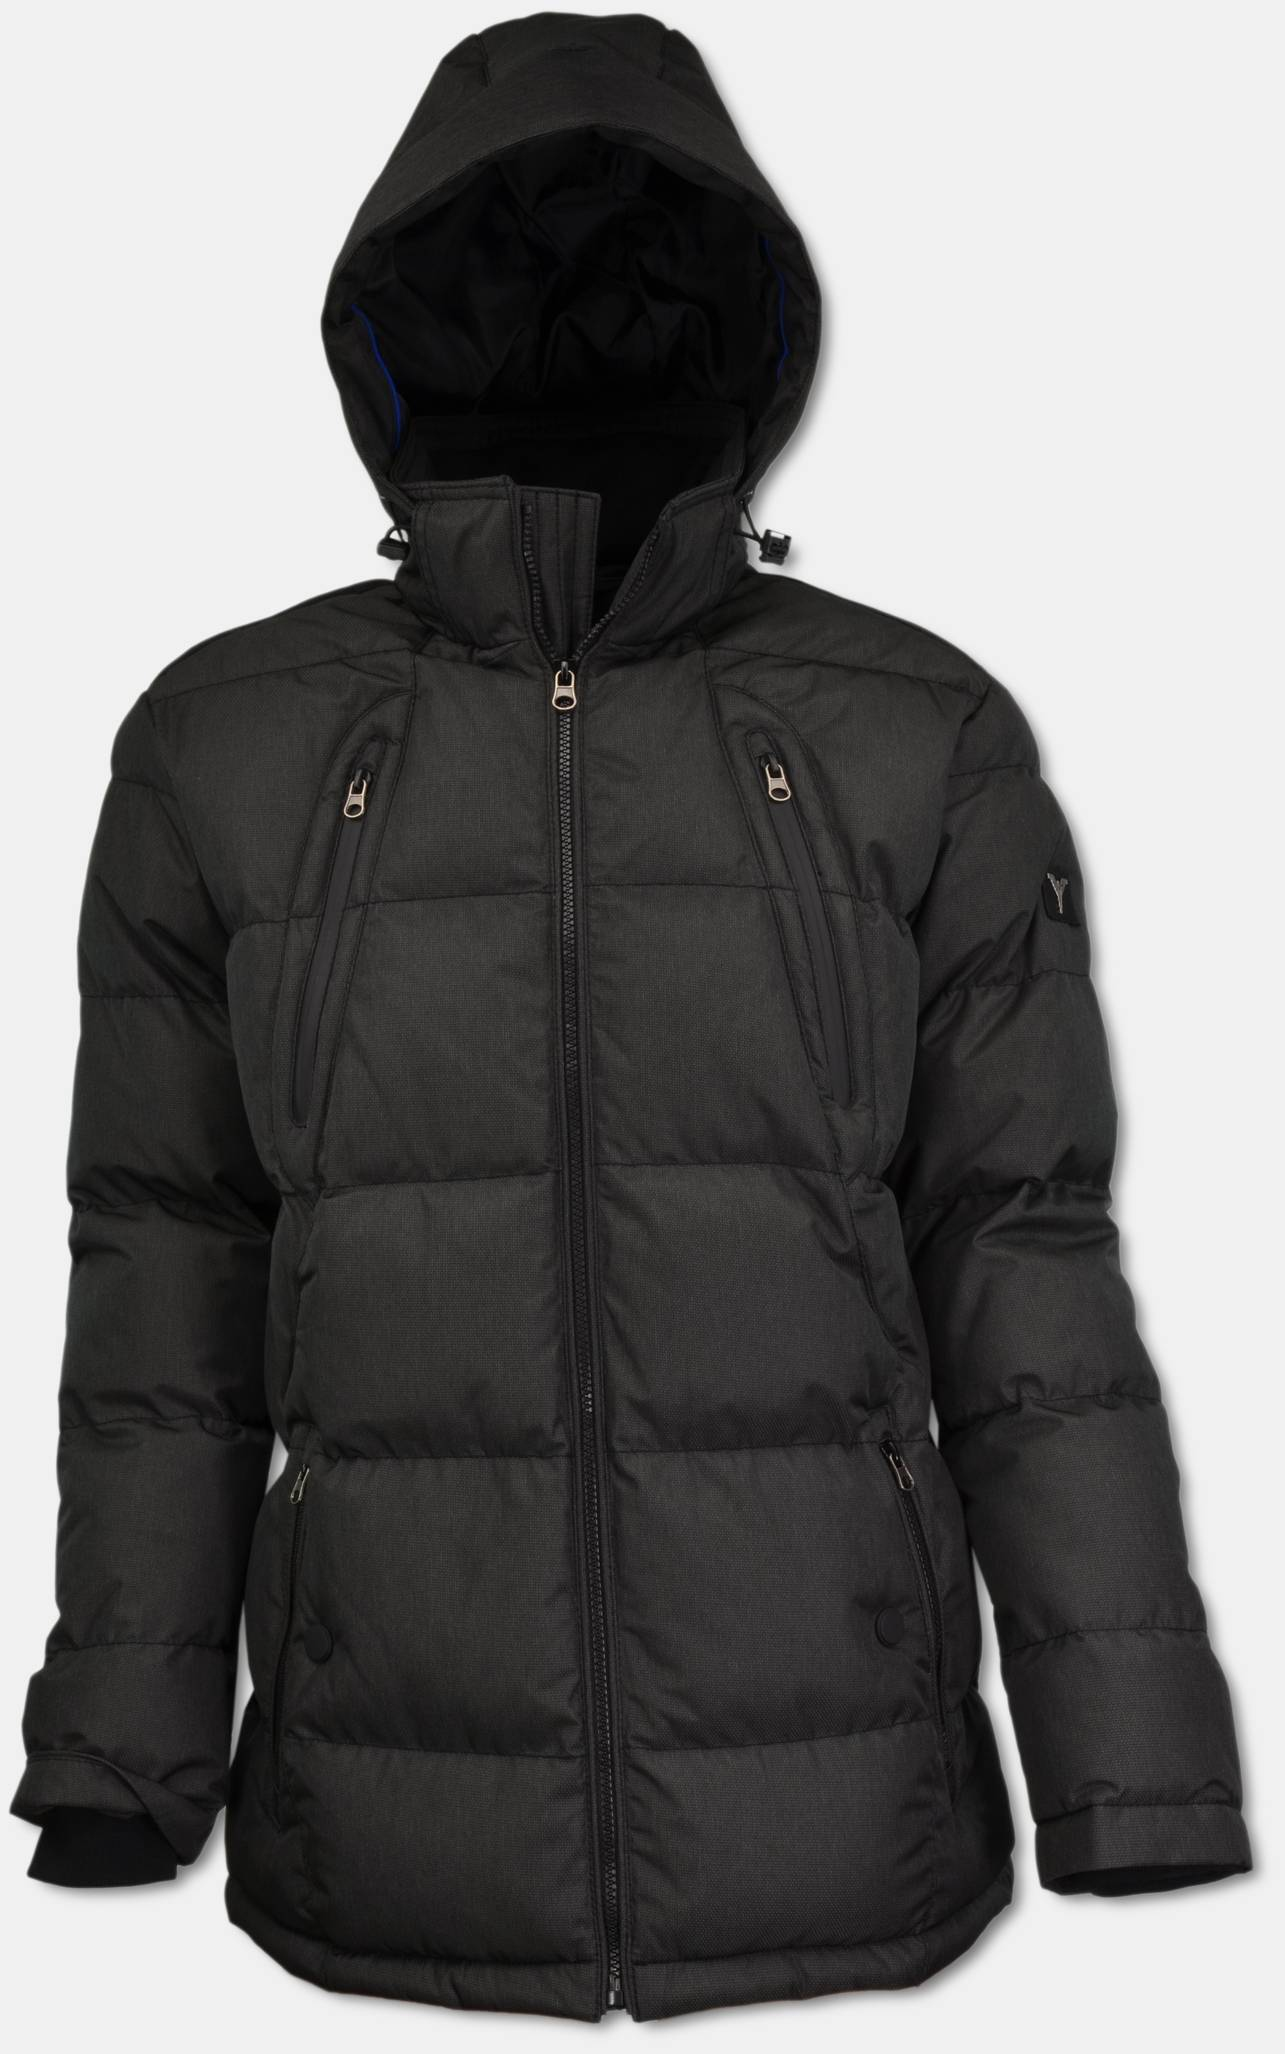 CARLO COLUCCI Online Shop   Warm lining winter jacket with hood, black 48   purchase online